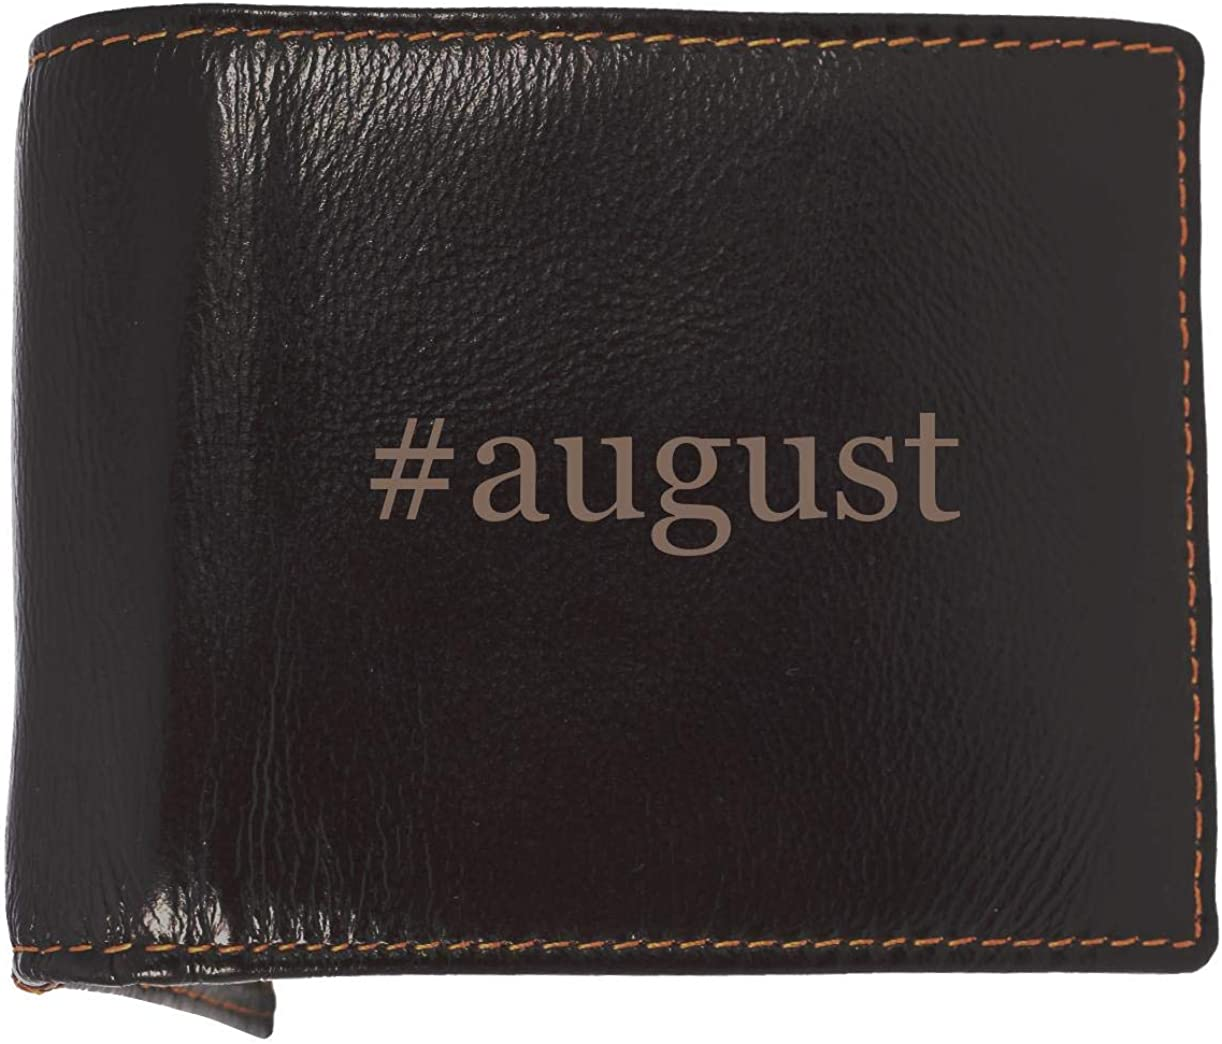 #august - Soft Hashtag Cowhide Genuine Engraved Bifold Leather Wallet 61VC5B42B4GL